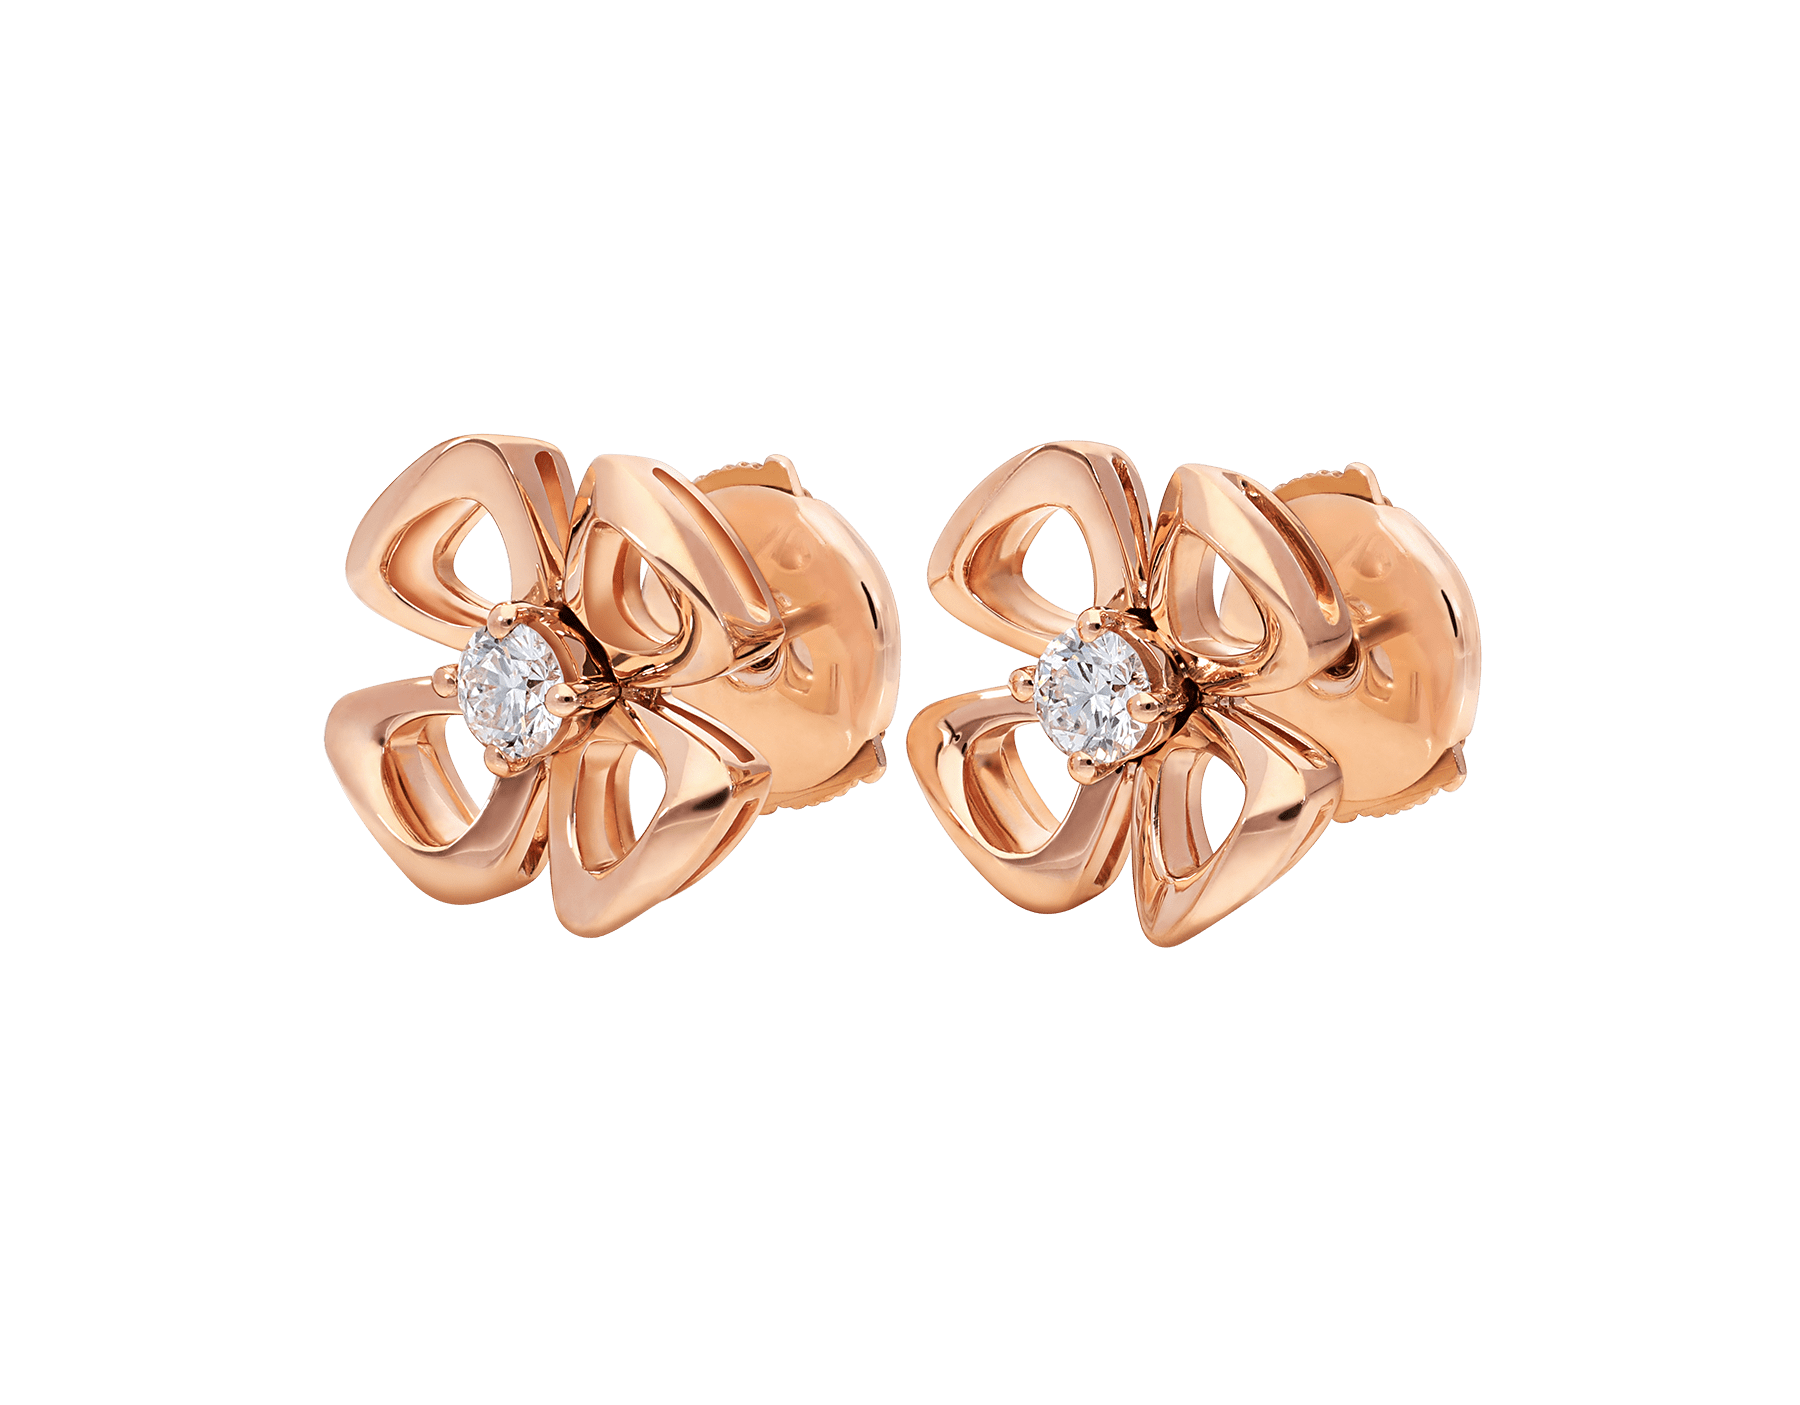 Fiorever 18 kt rose gold earrings set with two central diamonds (0.10 ct each) 355327 image 2